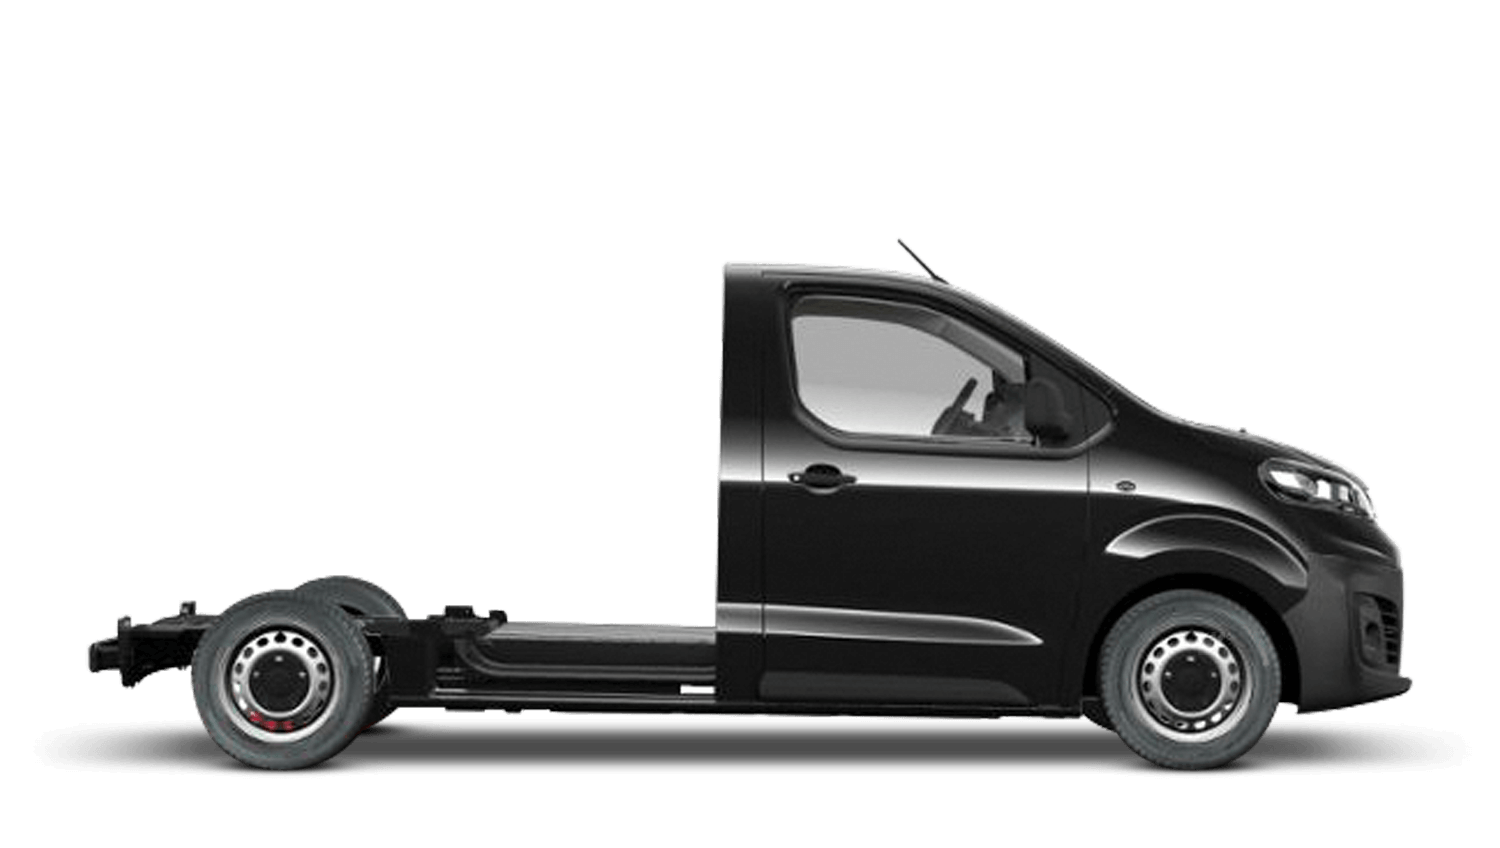 Diamond Black (Metallic) New Vauxhall Vivaro